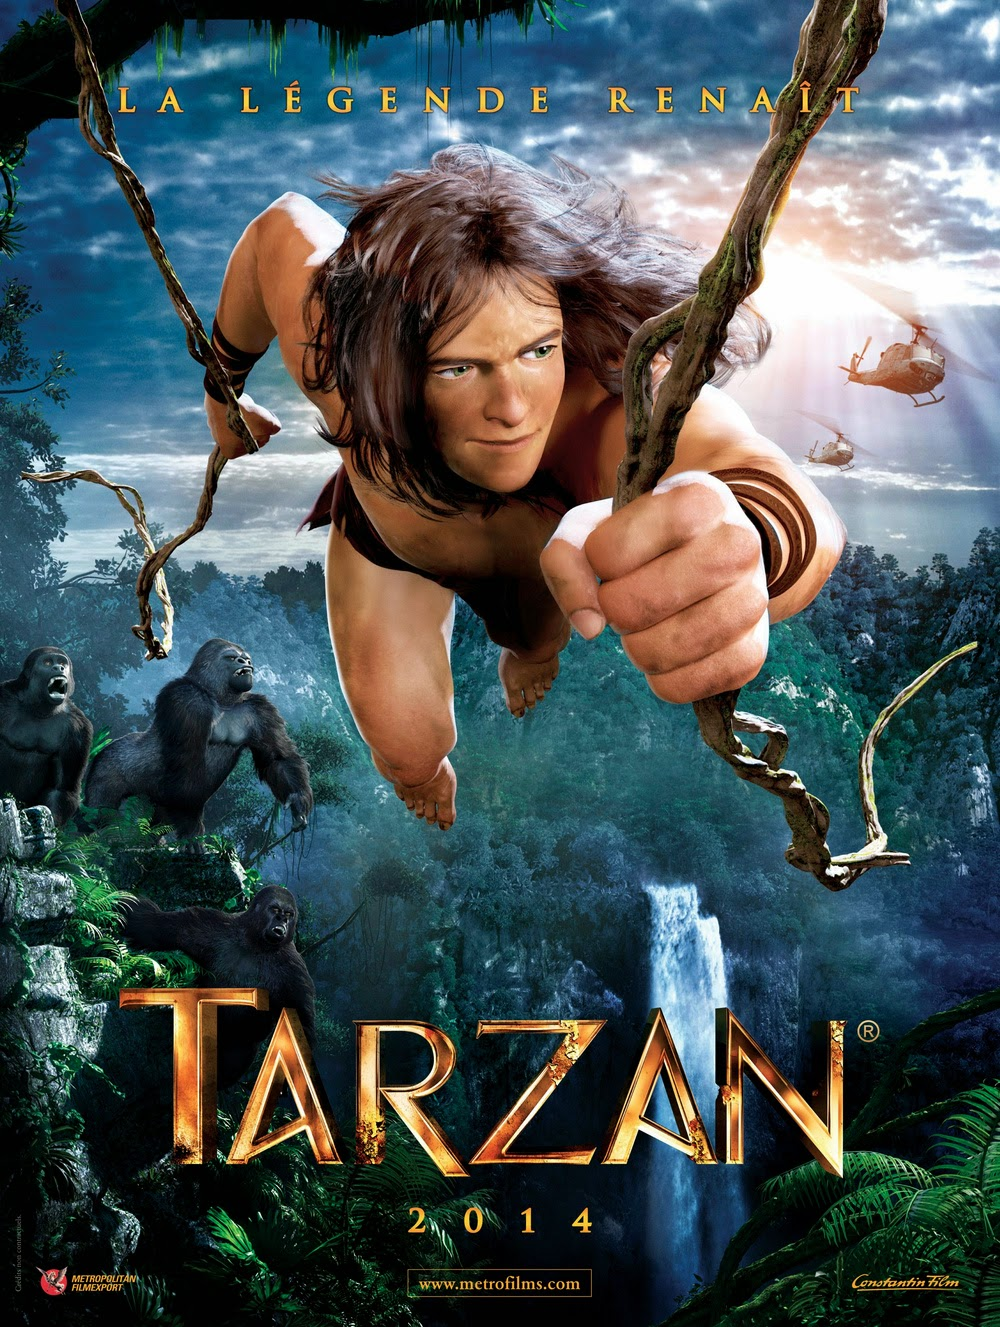 Tarzan has been adapted into many TV series (cartoon or mini-series